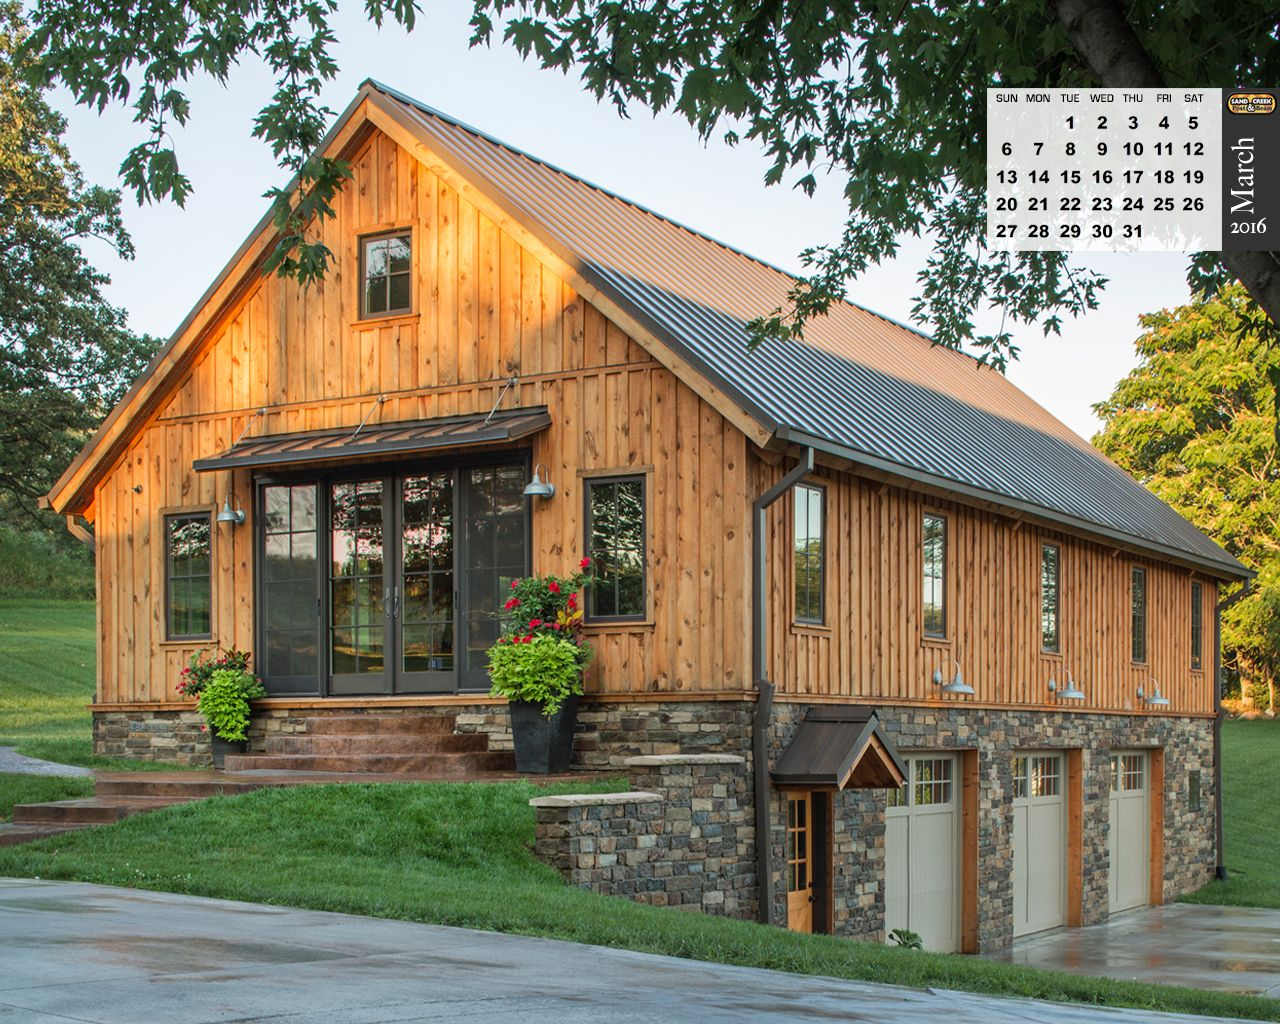 Barn wood home projects photo galleries ponderosa for Barn designs